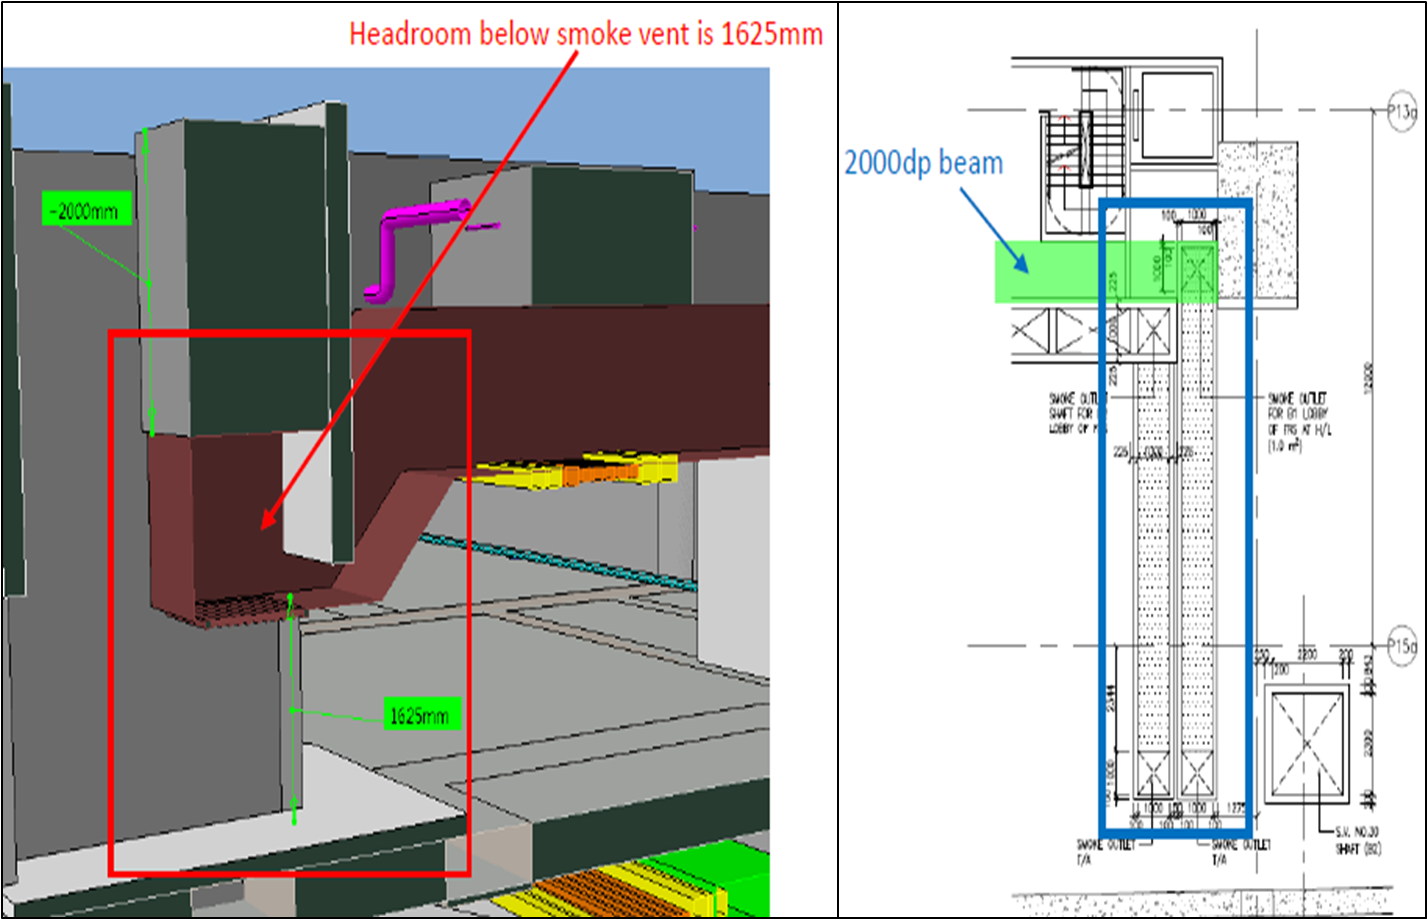 BIM - Basement - Smoke vent headroom checking